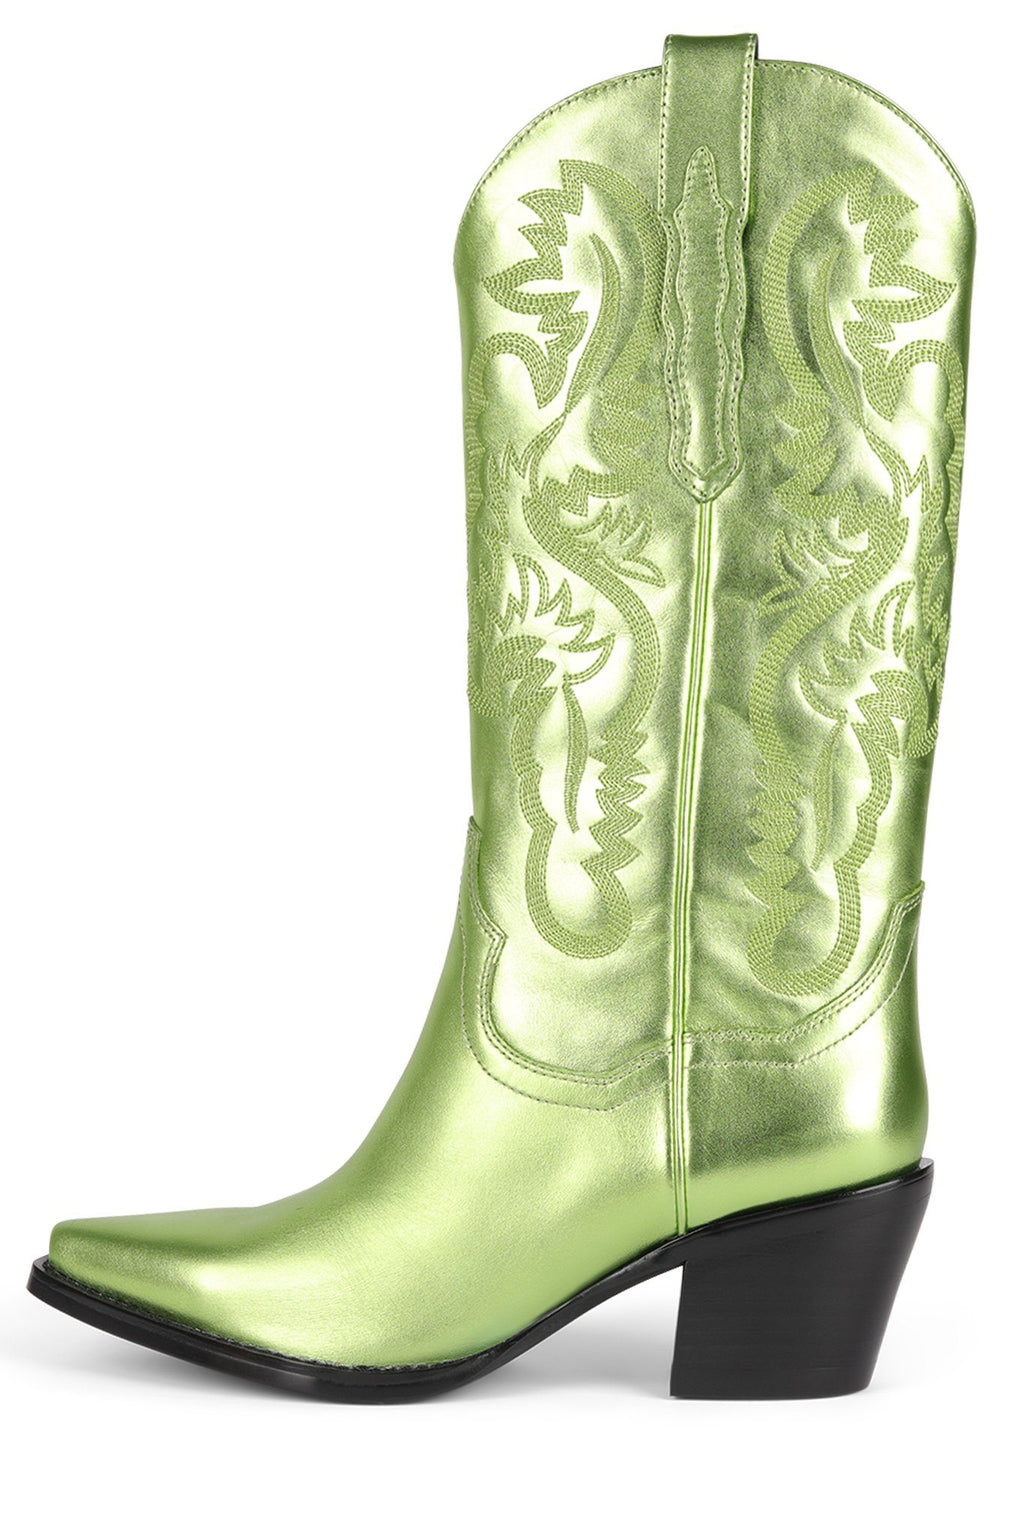 DAGGET Mid-Calf Boot Jeffrey Campbell Green Metallic 6